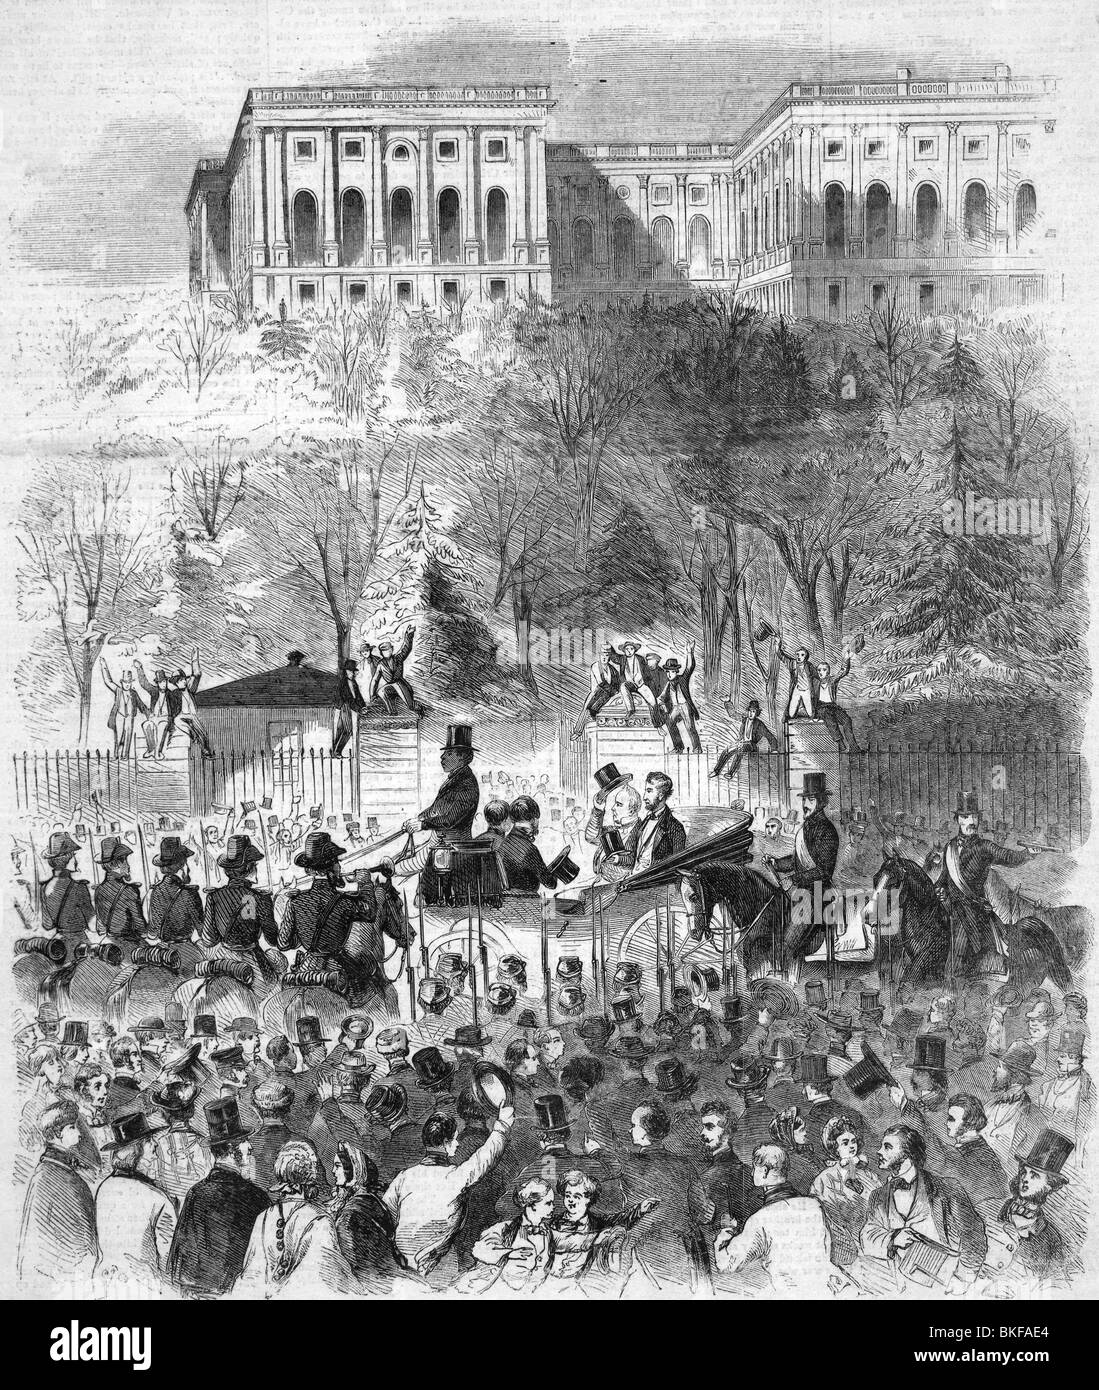 Contemporary sketch of the inaugural procession of US President Elect Abraham Lincoln on March 4 1861. - Stock Image